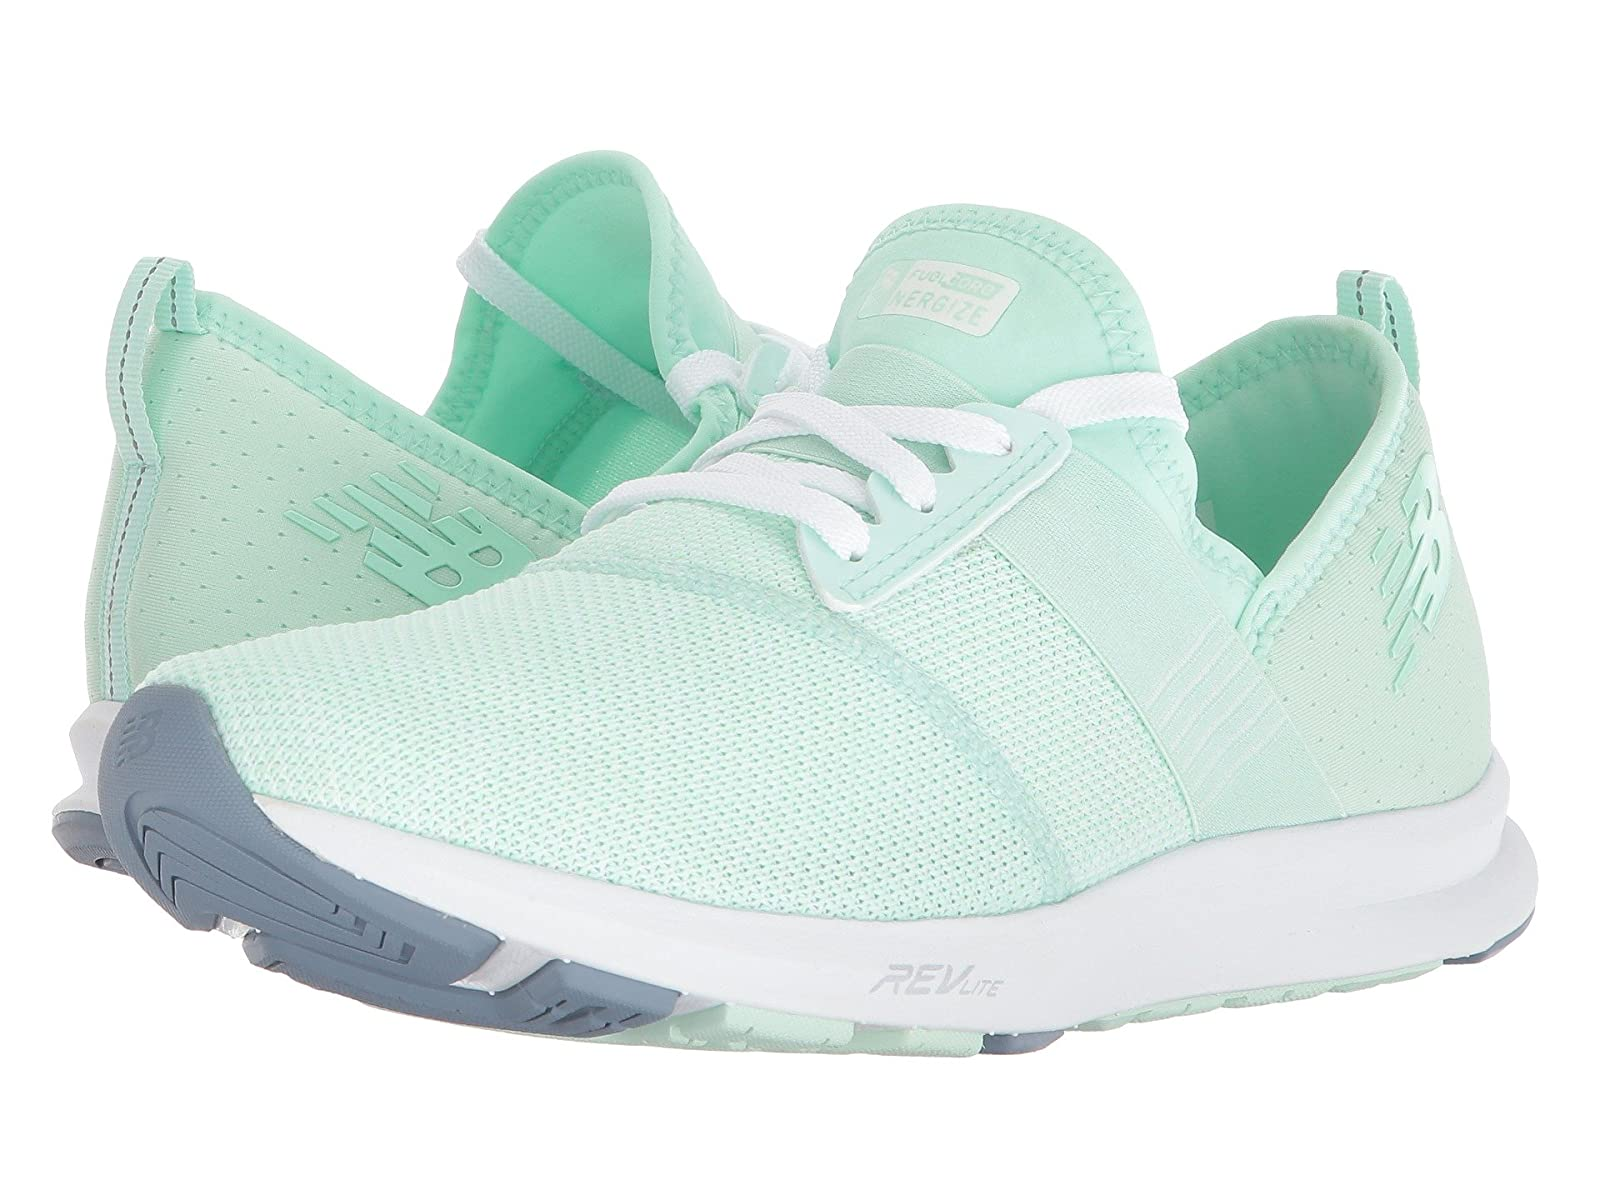 New Balance FuelCore NERGIZECheap and distinctive eye-catching shoes